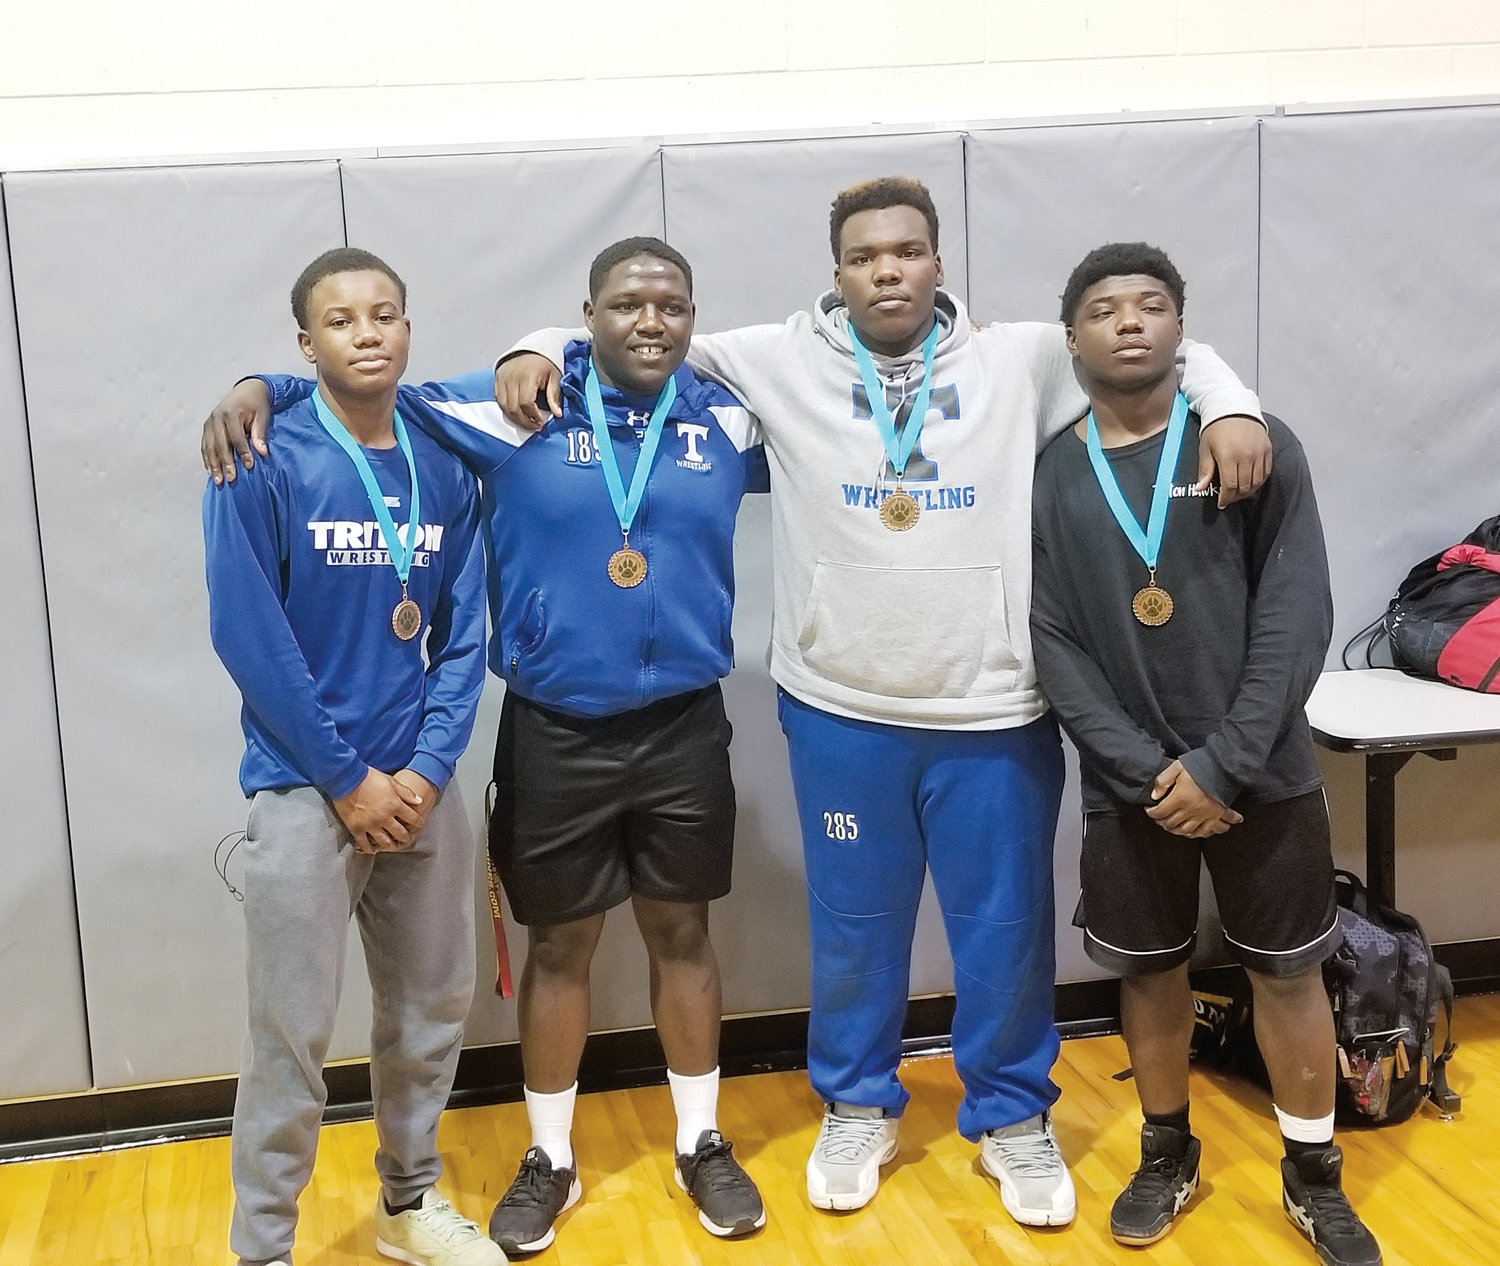 Triton wrestlers Nick Williams (145), Tyre Cameron (220), Michael Carvin (285) and Romello Cowan (170) each placed third in the individual tournament at West Johnston on Saturday.